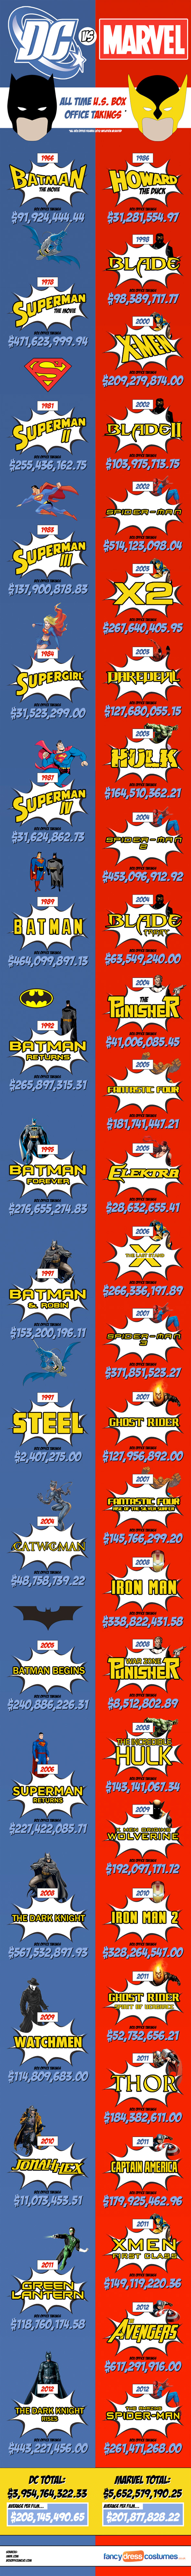 Marvel vs DC at the Box Office